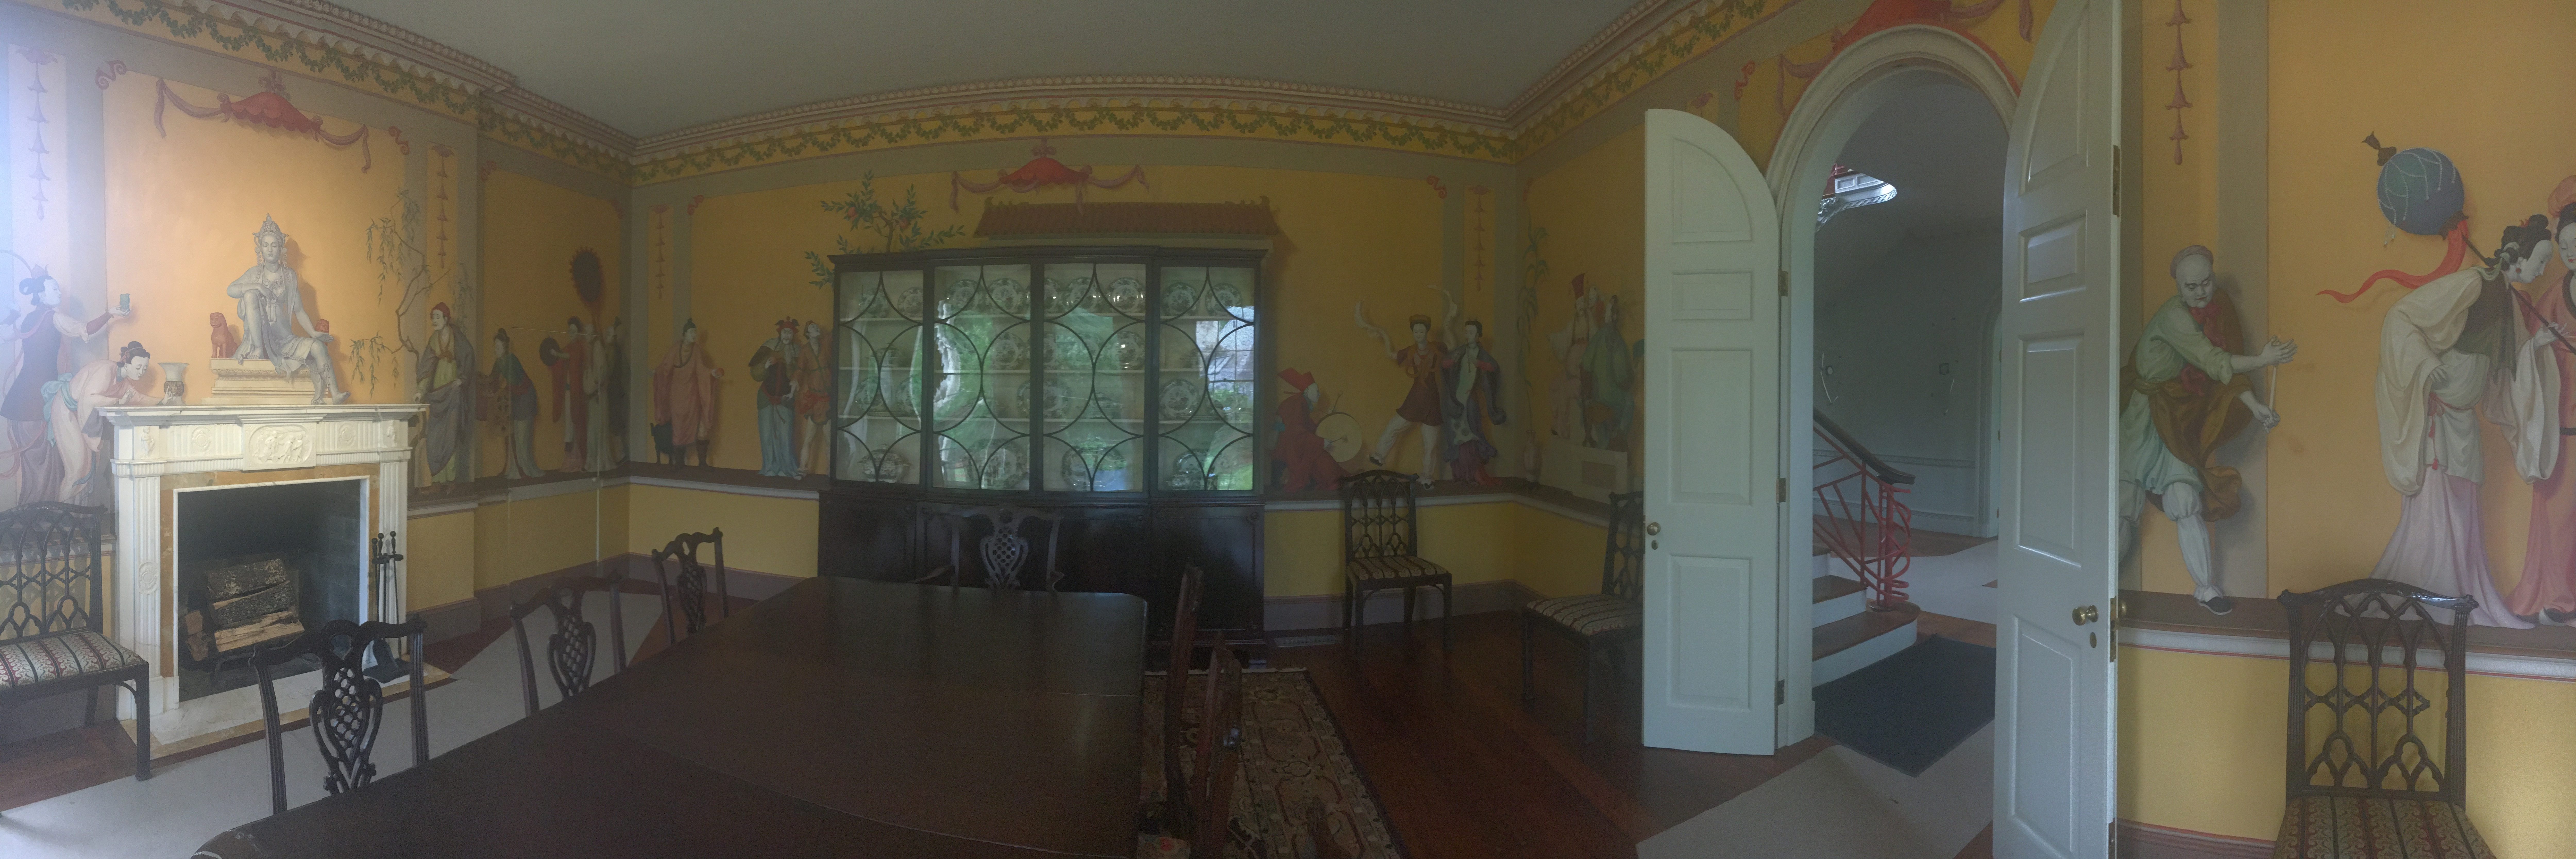 Dining Room - artwork by Allyn Cox